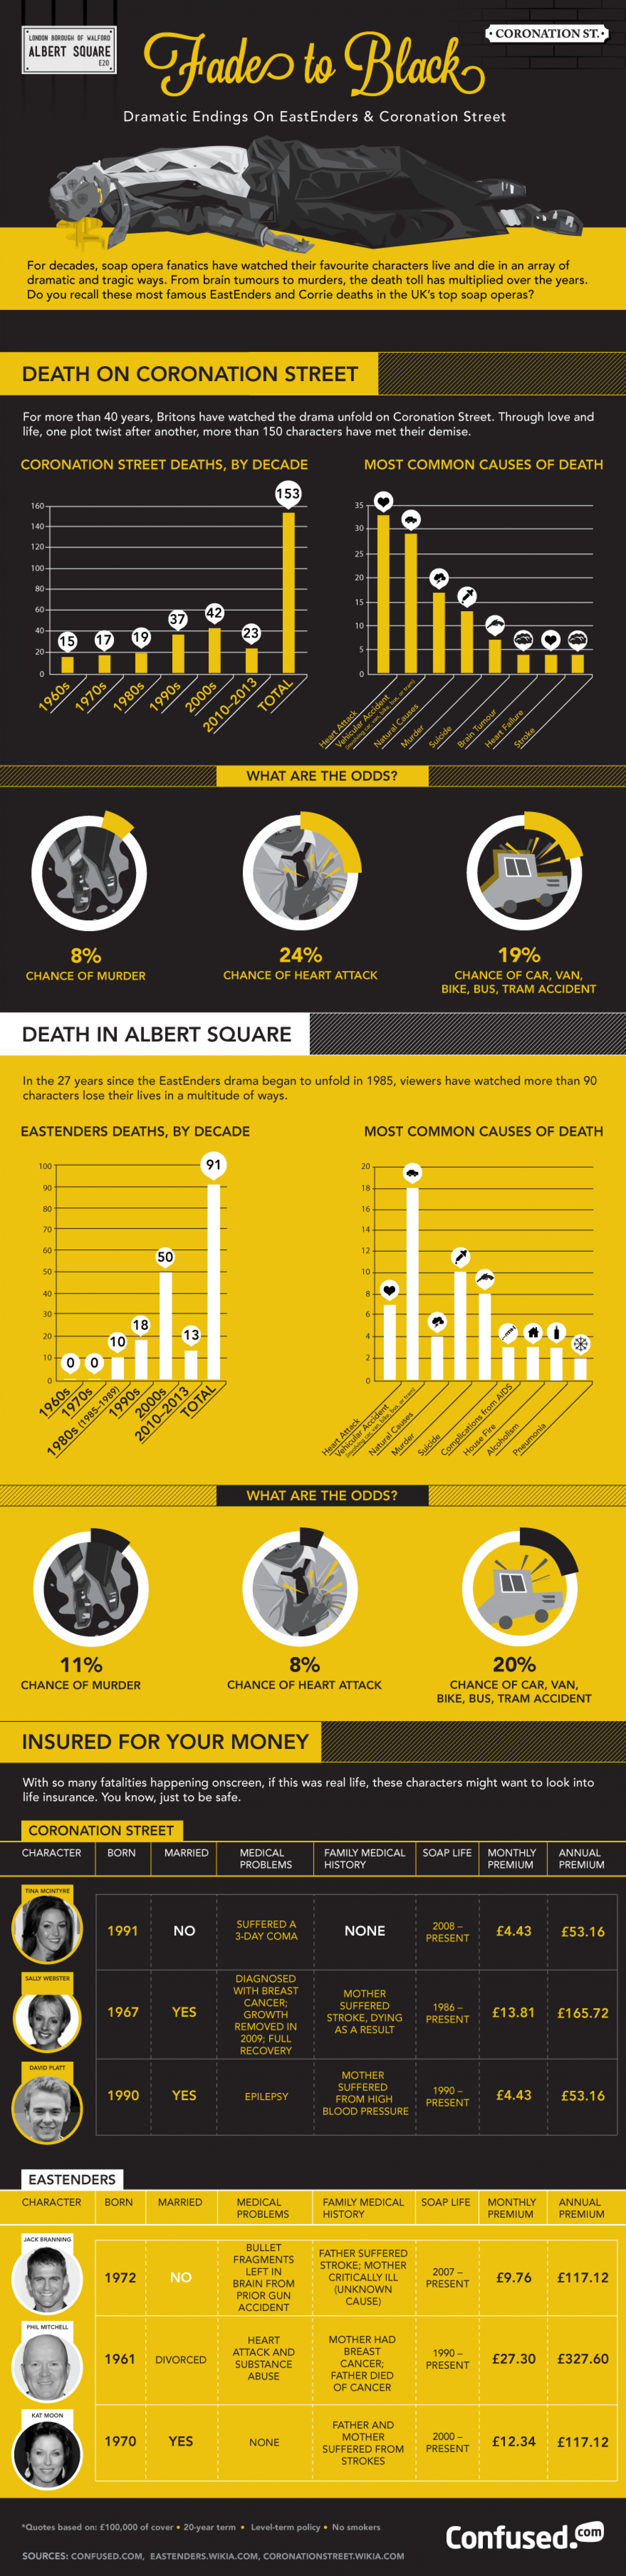 Soap opera deaths: EastEnders versus Coronation Street Infographic